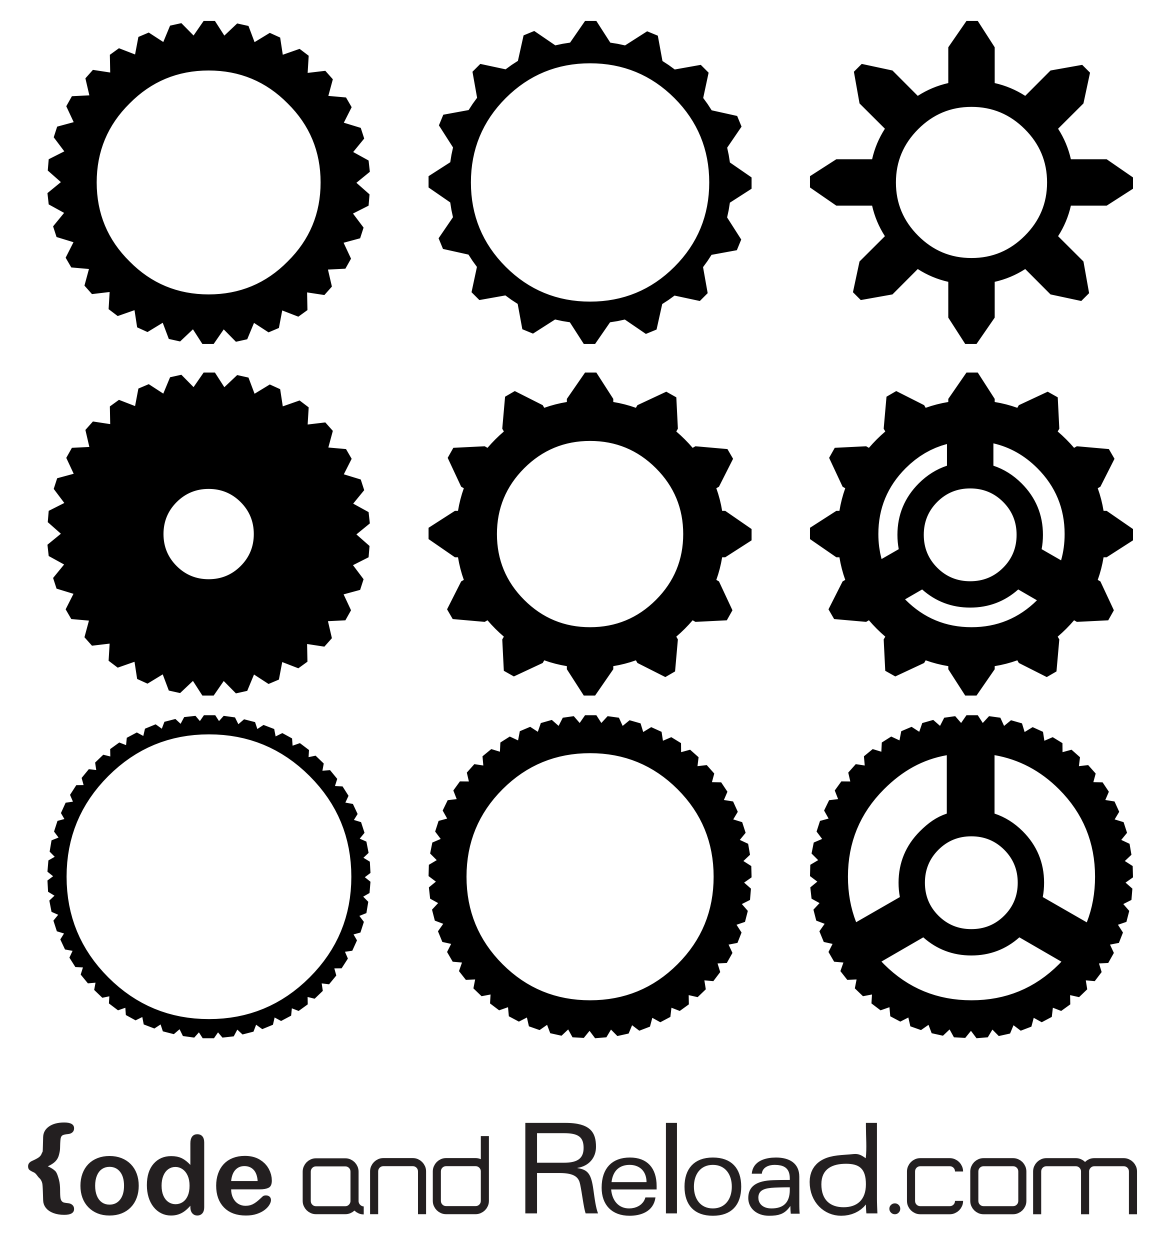 Royalty Free Stock Photography Gear Mechanics Settings Illustration Image22293087 together with Head Side View Brain Gears Drawing Gm516375073 48738226 in addition Clock Gear Motif 183542083 besides Cogs Gears Screwdriver Pincers Spanner 18043247 together with Get Some Ink. on gears and cogs drawings